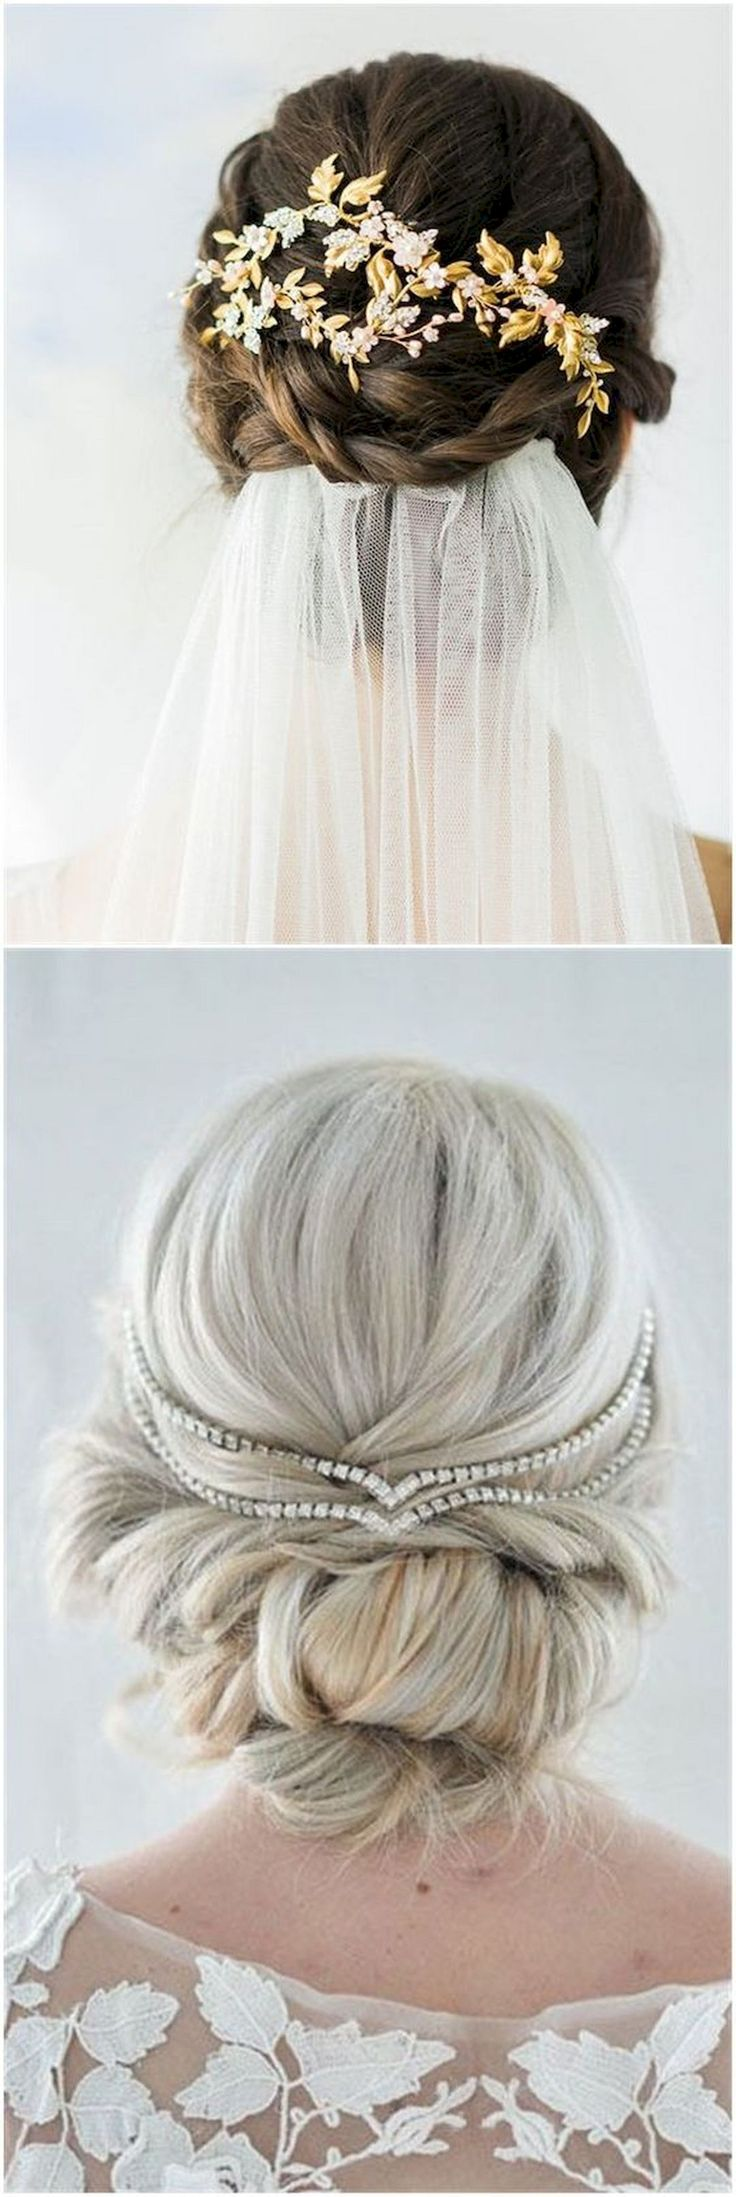 737 best Fancy Hairdos images on Pinterest | Hairstyle ideas, Updos ...